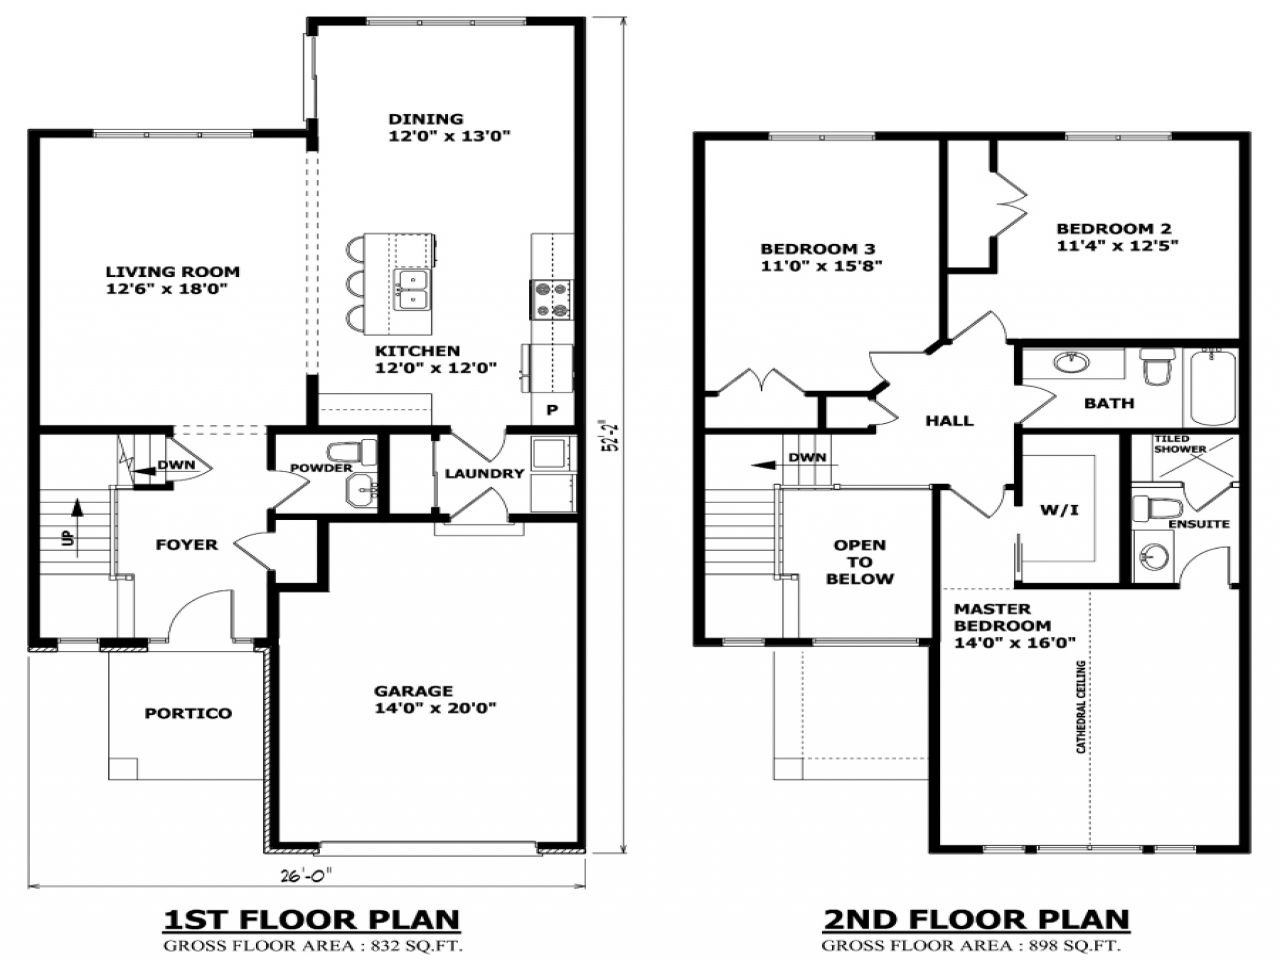 Simple 2 Story House Floor Plans New House Plans House Plans 2 Storey Two Storey House Plans